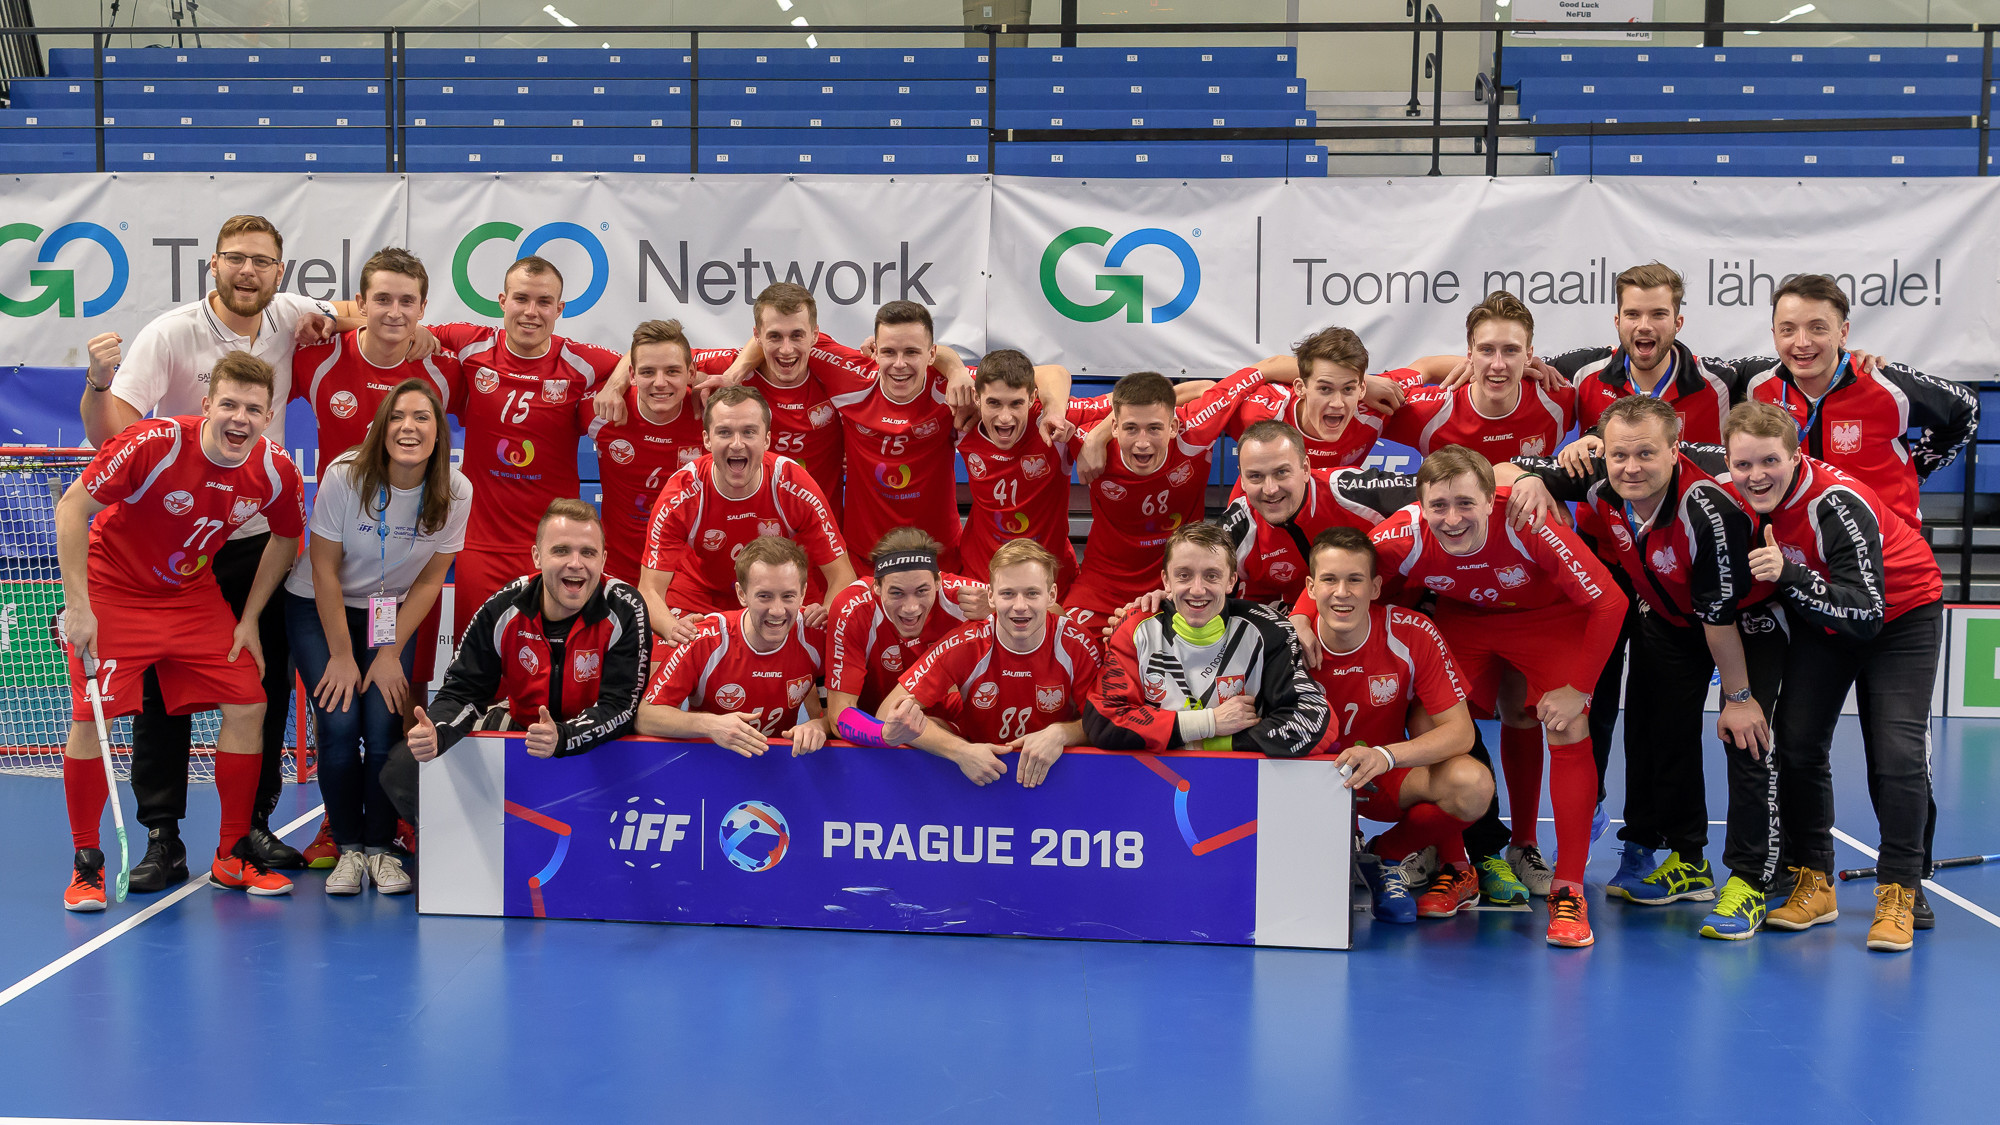 Poland secure World Championship place on final day of IFF European Floorball qualifiers